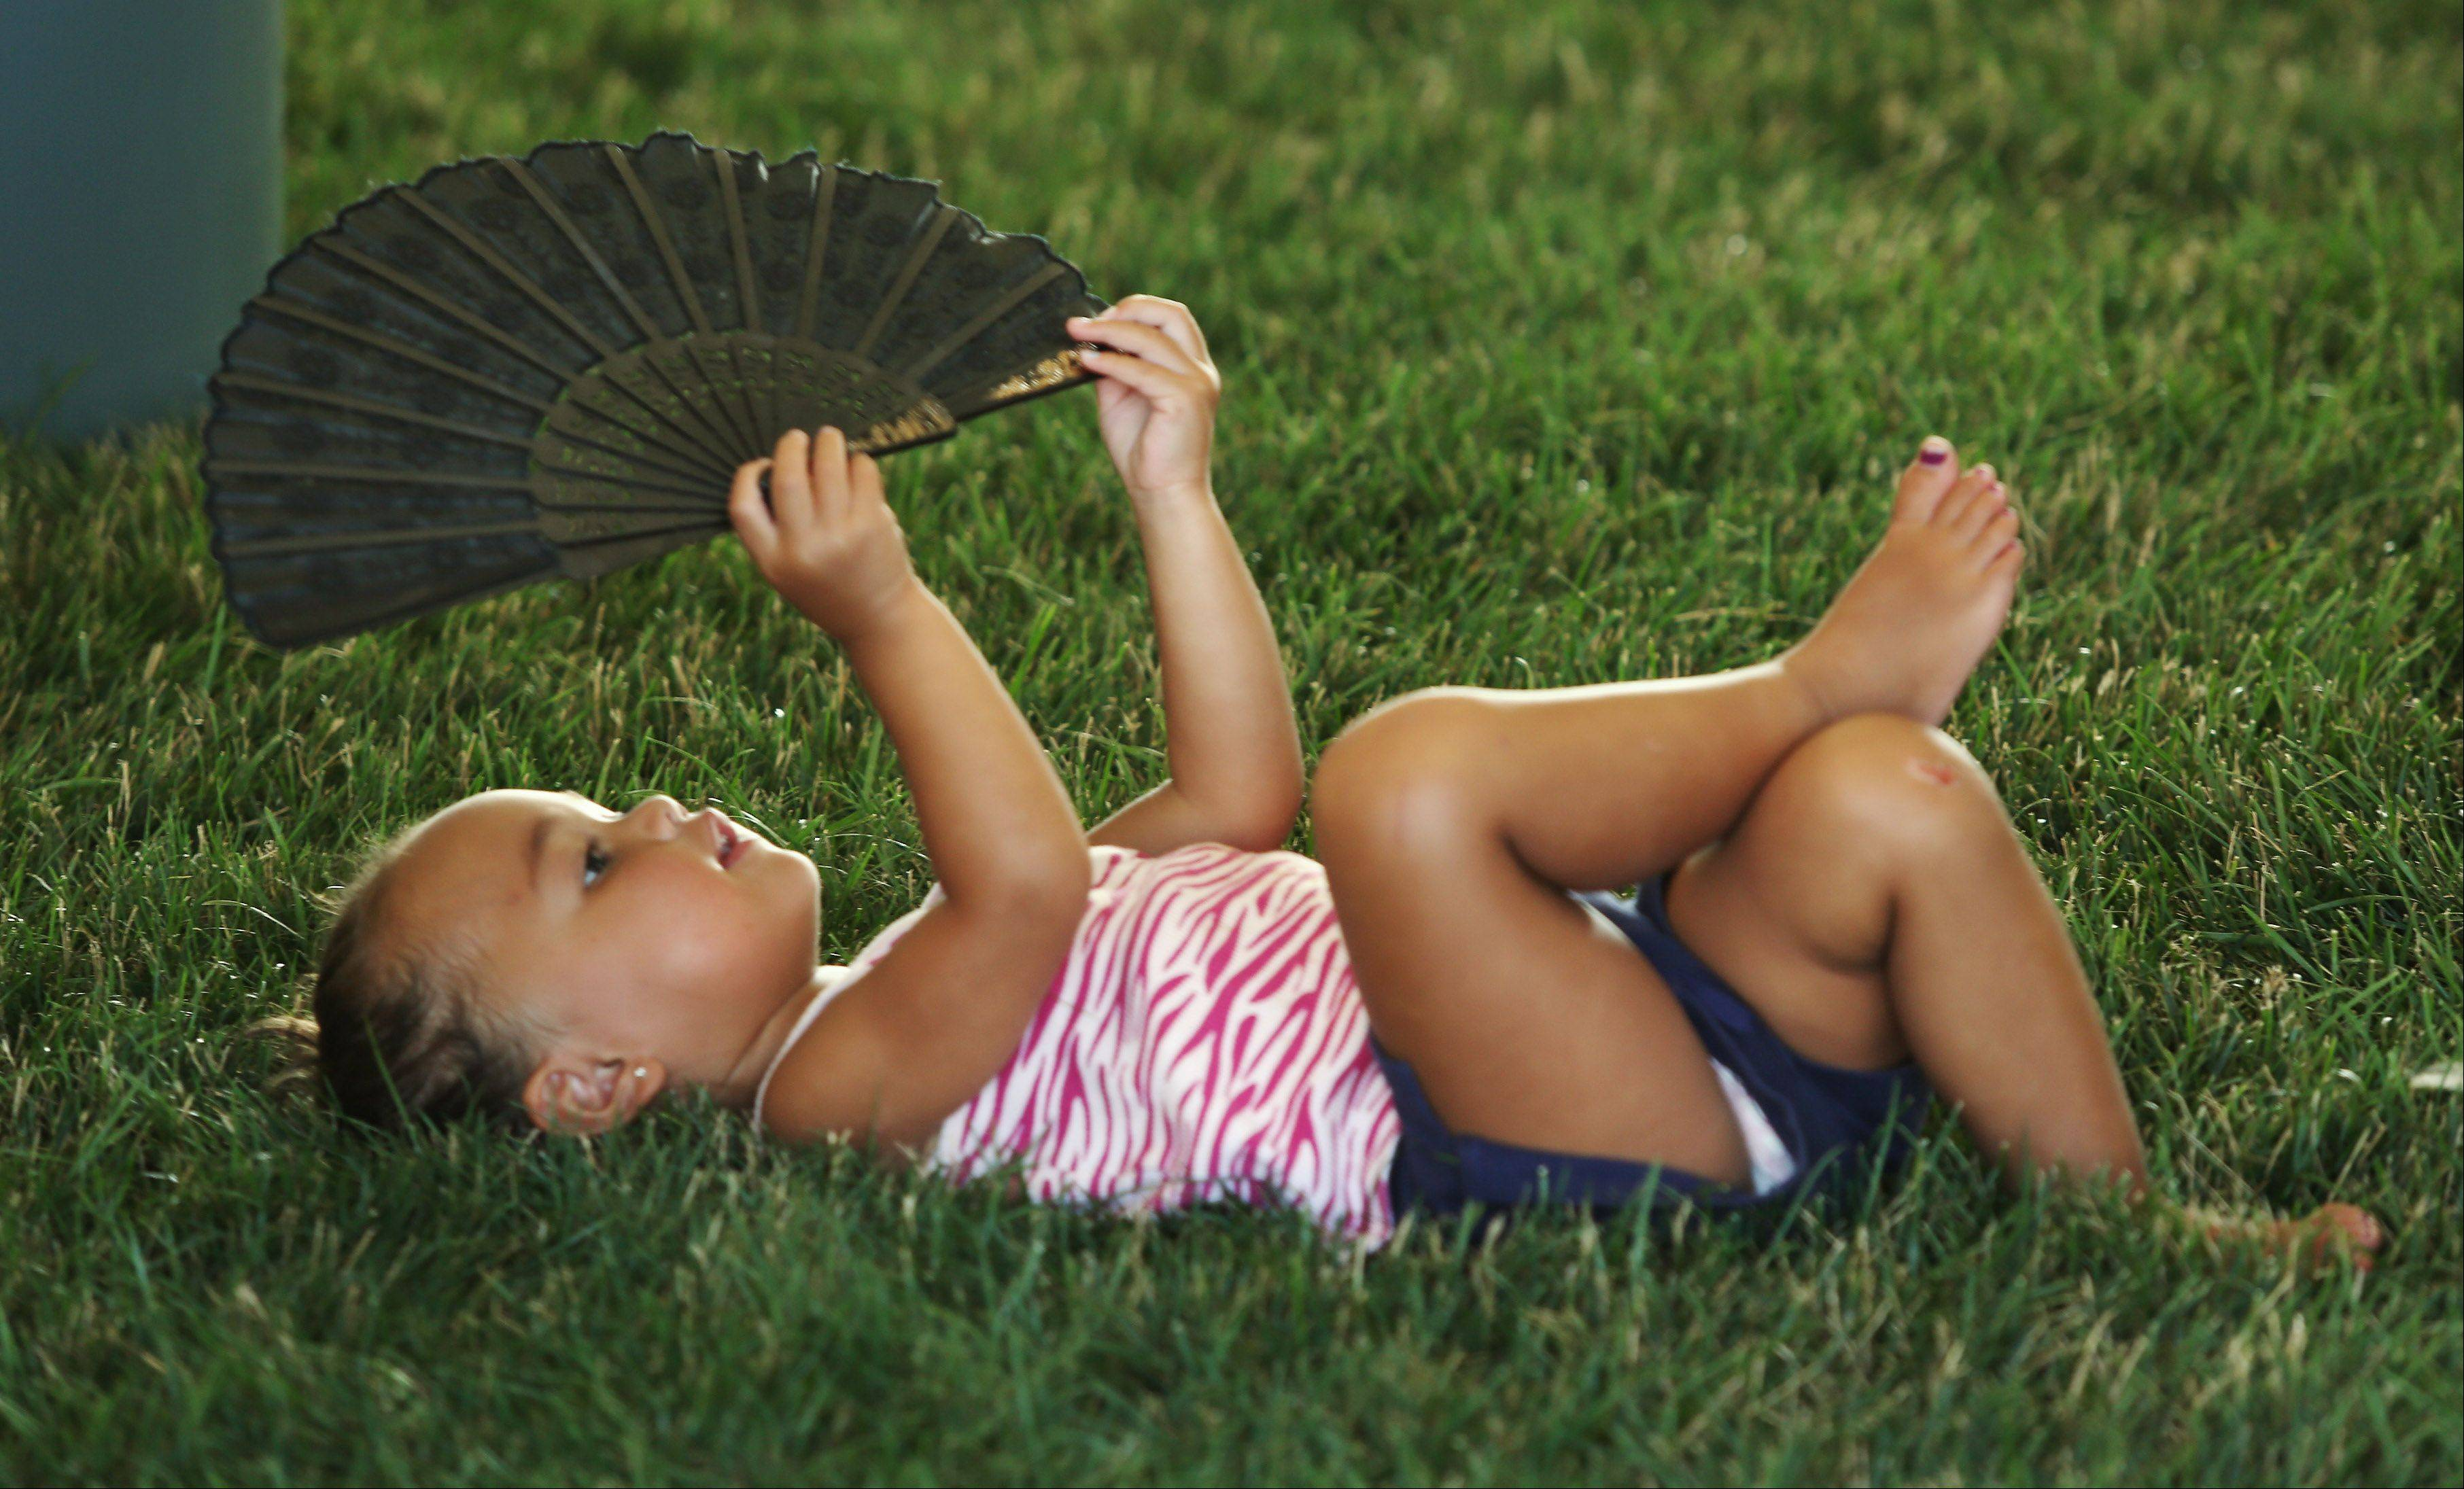 Abbie Glover, 2, of Round Lake Heights, keeps cool in the food tent with a fan during the Vernon Hills Summer Celebration at Century Park Thursday. The event included music, entertainment, food and amusement rides.